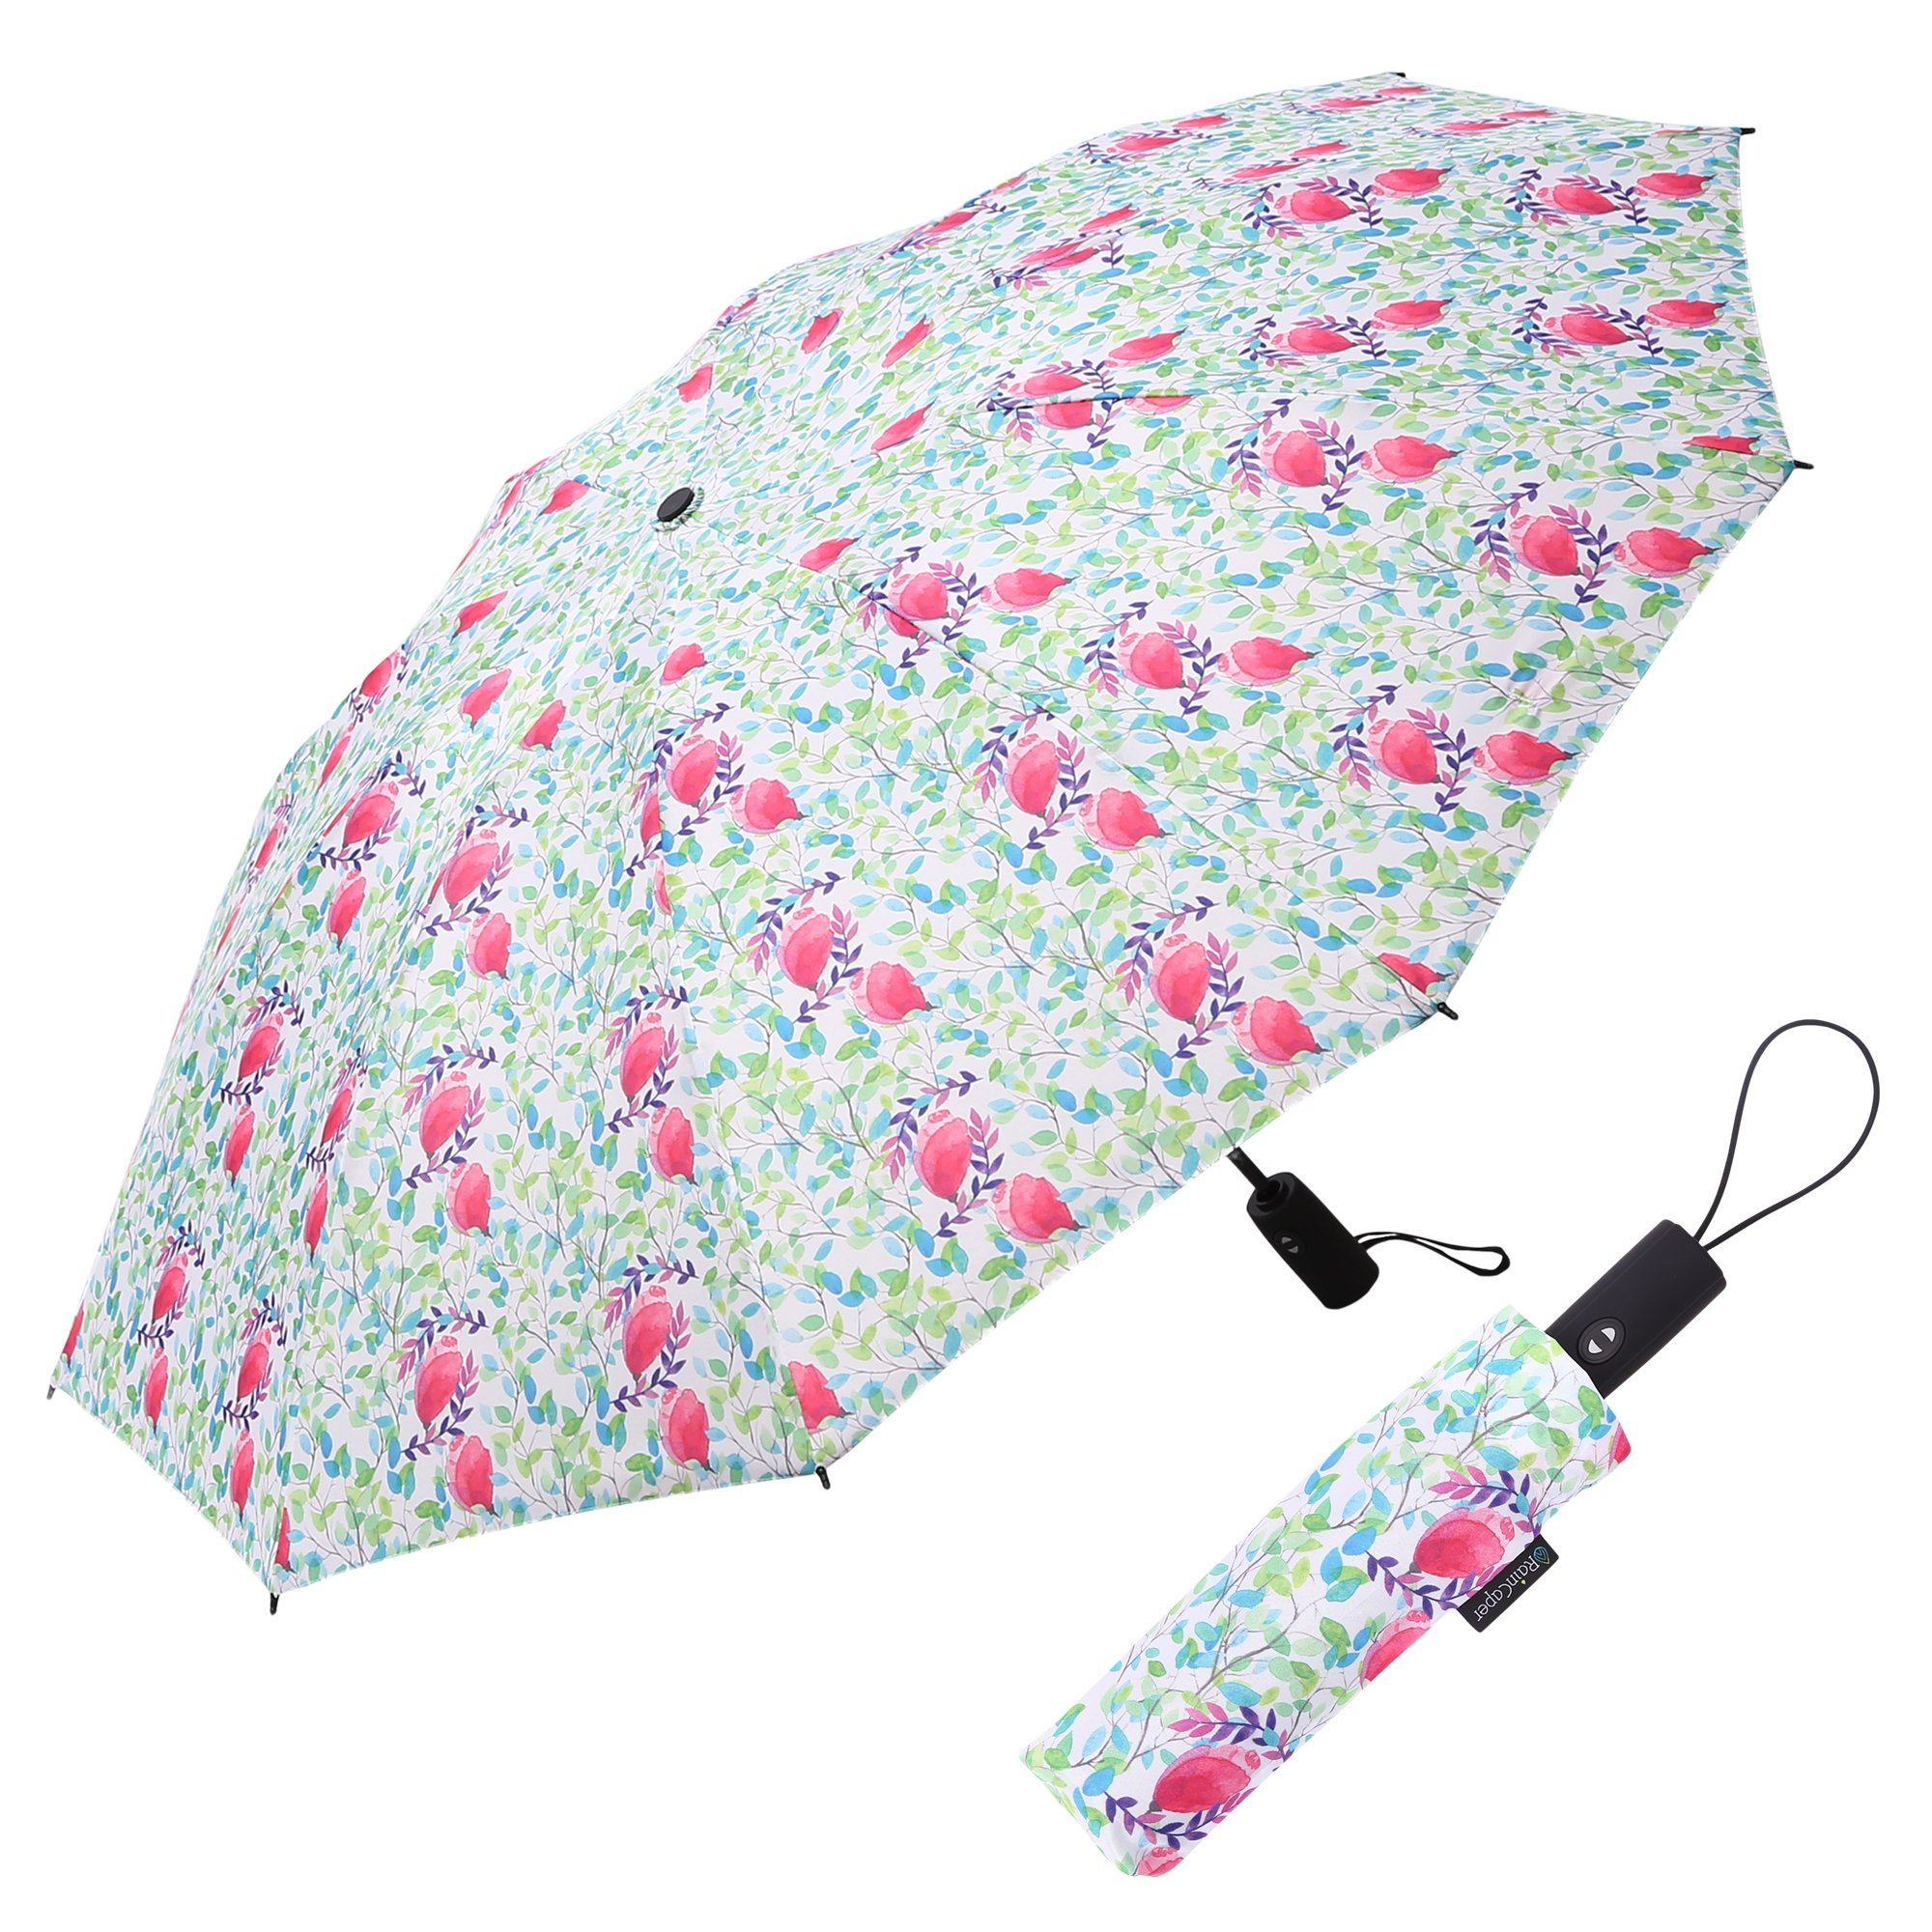 Image of a RainCaper Spring Watercolor folded traveling umbrella shown both open and closed